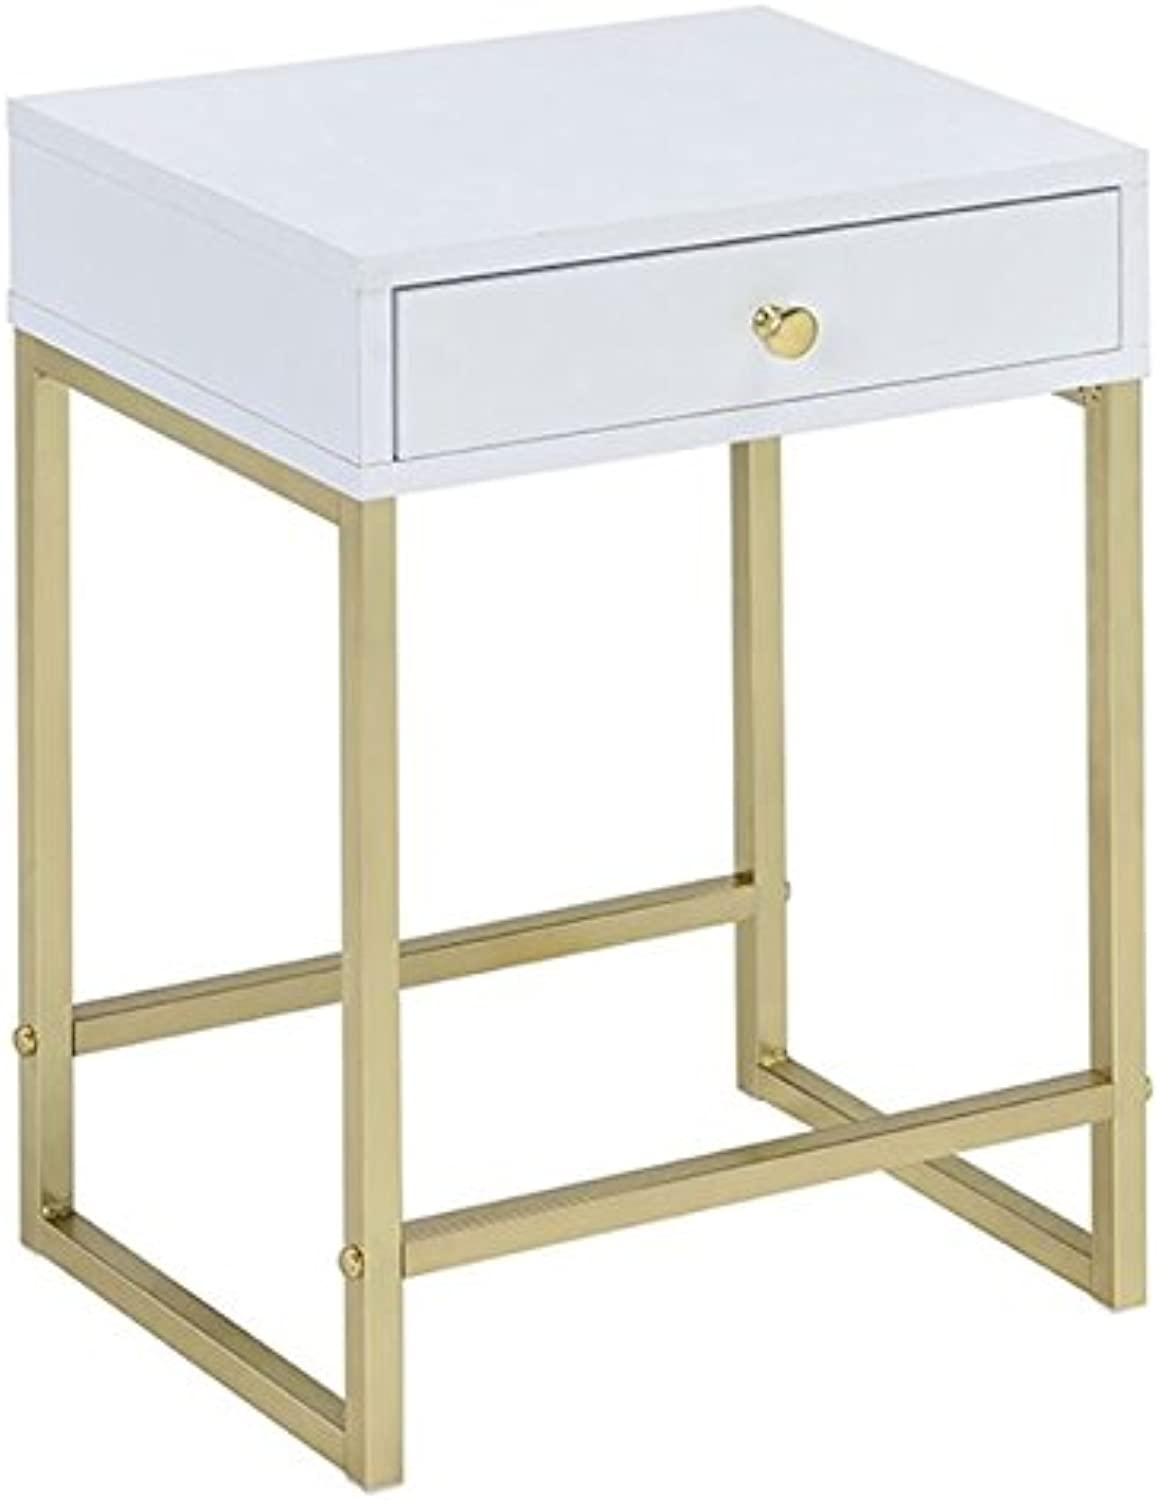 Bowery Hill End Table in White and Brass